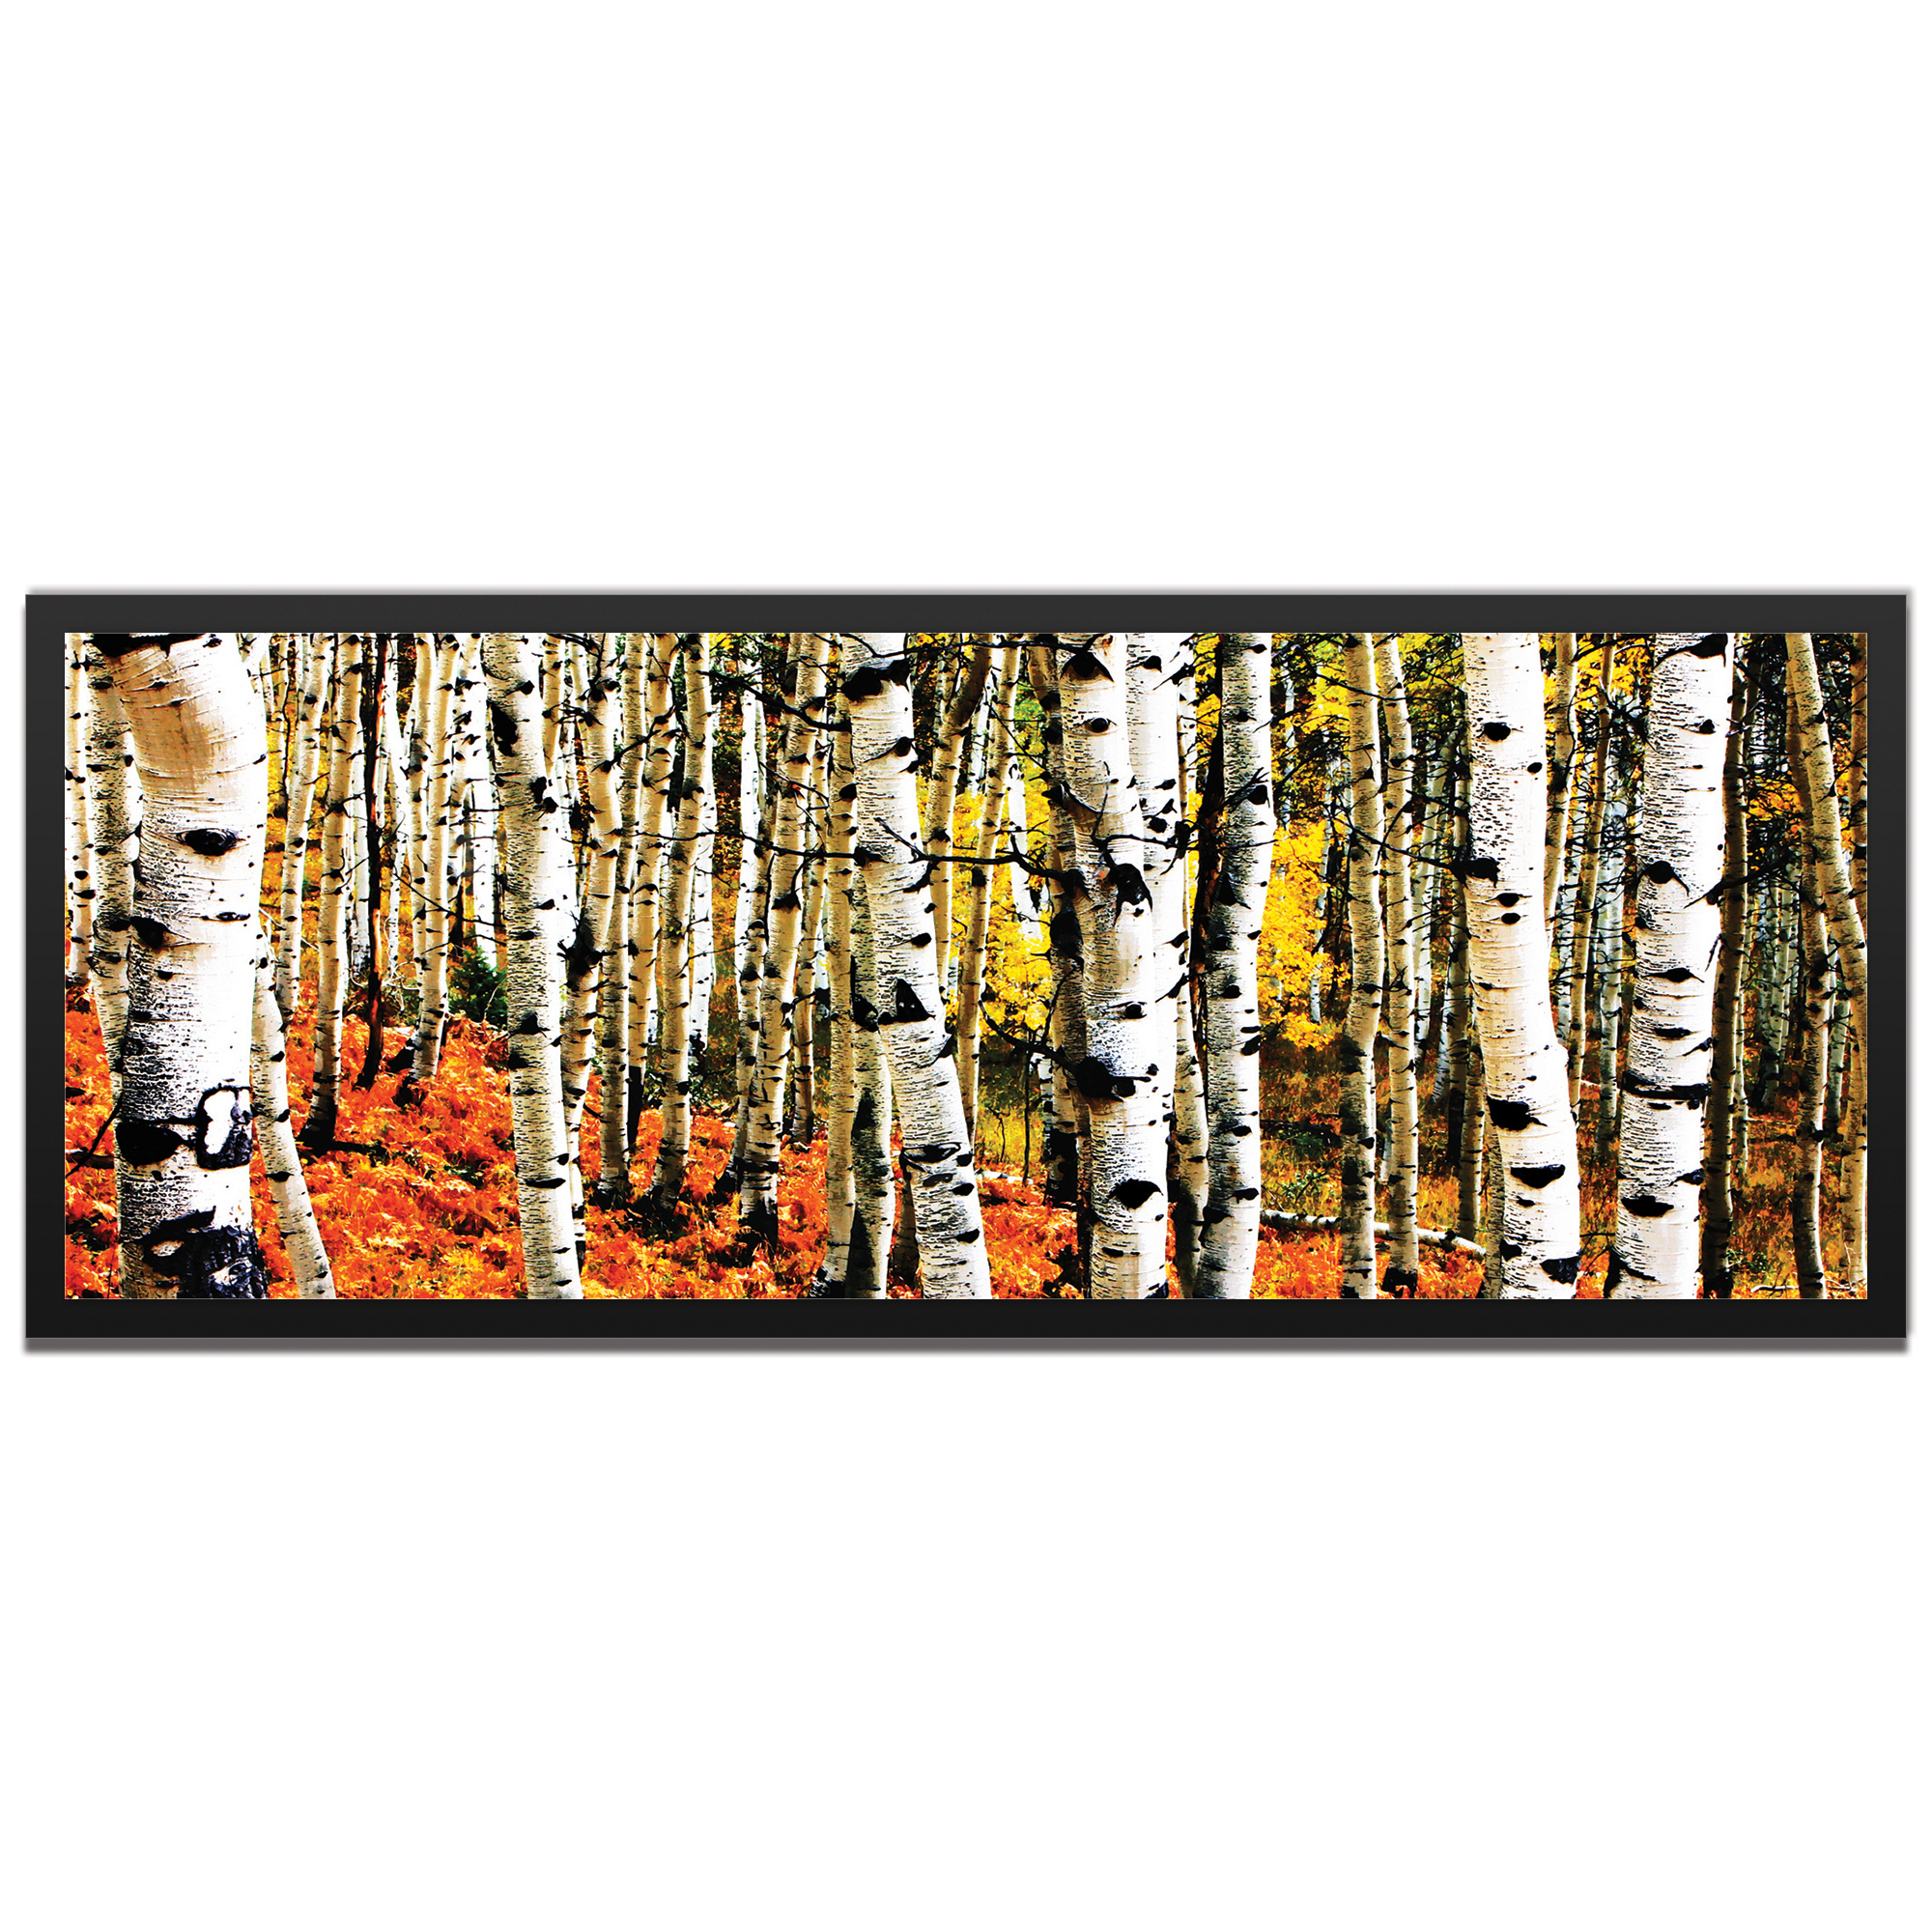 Eric Waddington 'Aspen Grove Framed' 48in x 19in Landscape Photography Trees Art on Colored Metal